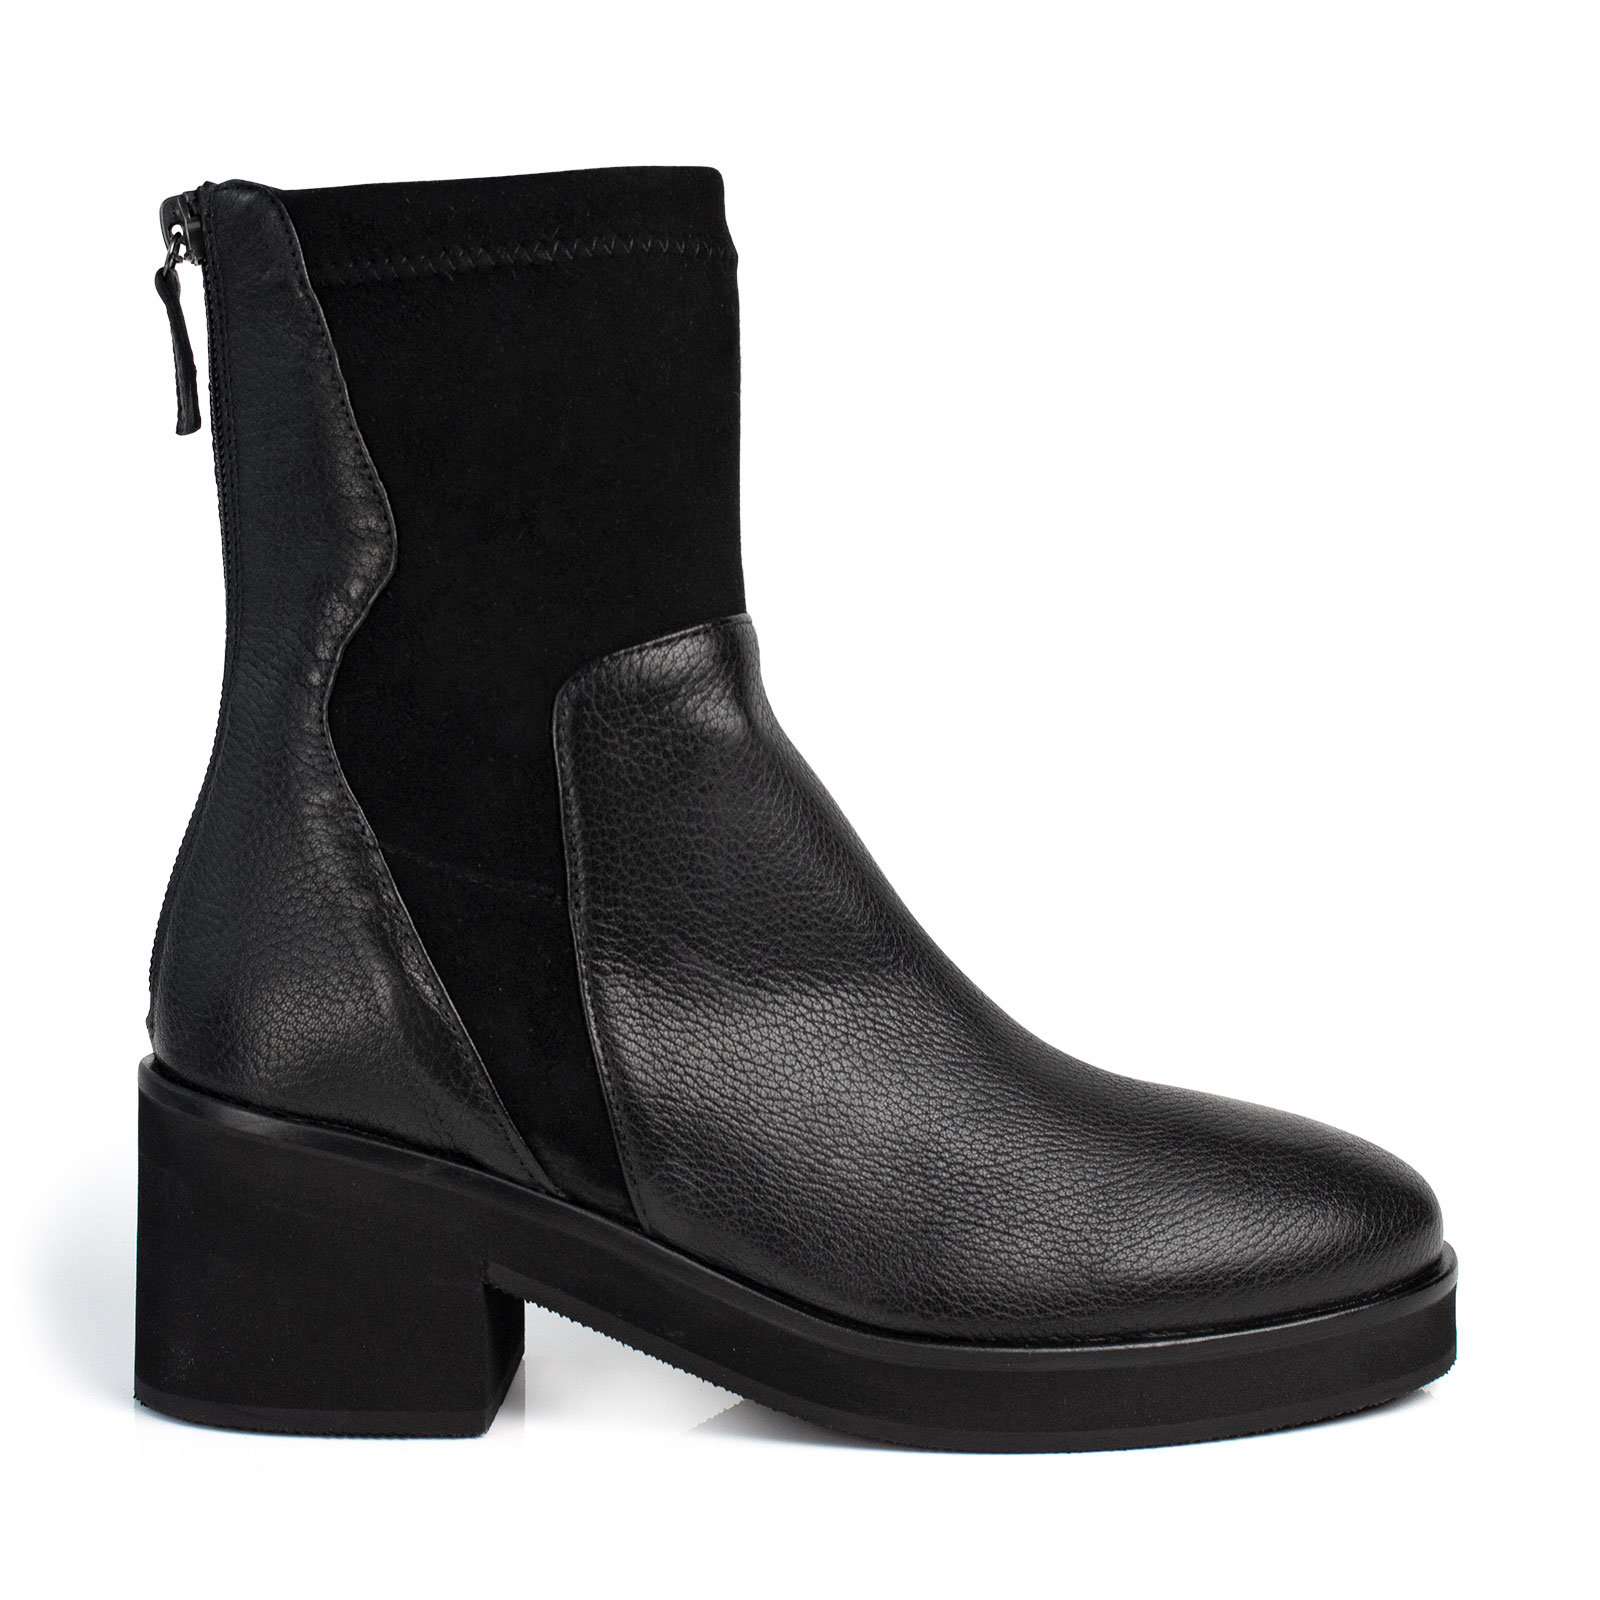 Blondie Boot by Homers Shoes (Leather Boot) | Artful Home